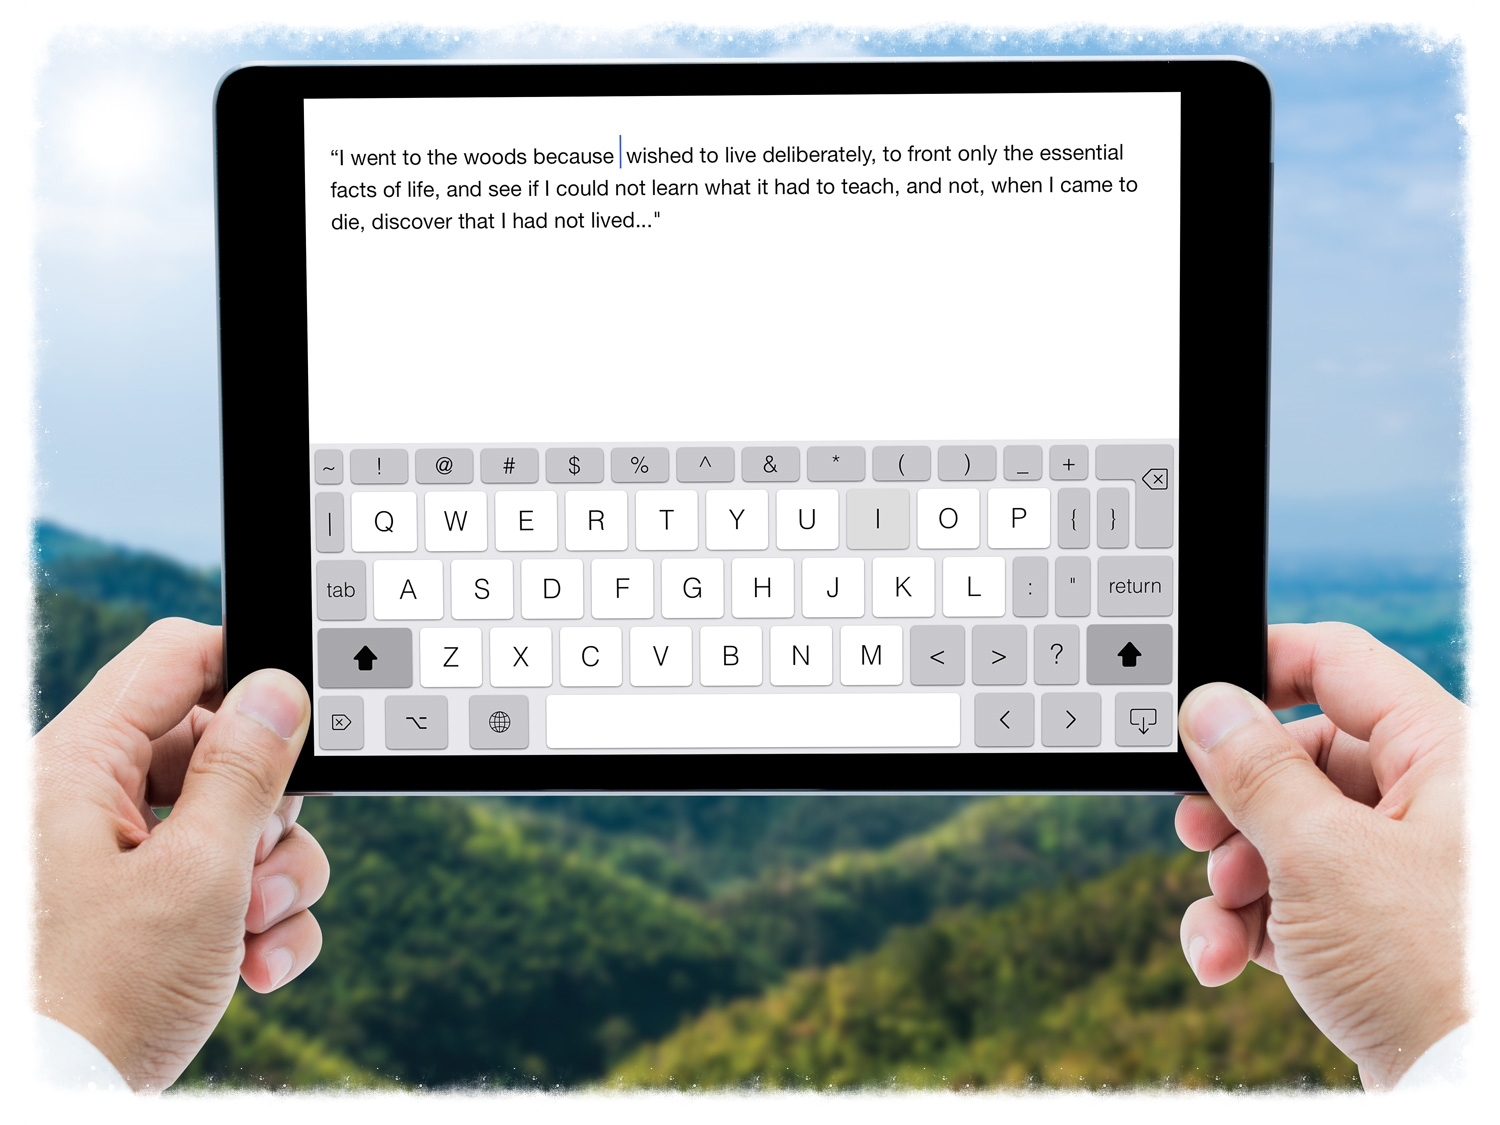 Make the most of your iPad or iPhone and increase your productivity with PadKeys iOS keyboard. PadKeys is designed for writers, students, professionals, programmers, editors and anyone who needs to type quickly and precisely on the go.